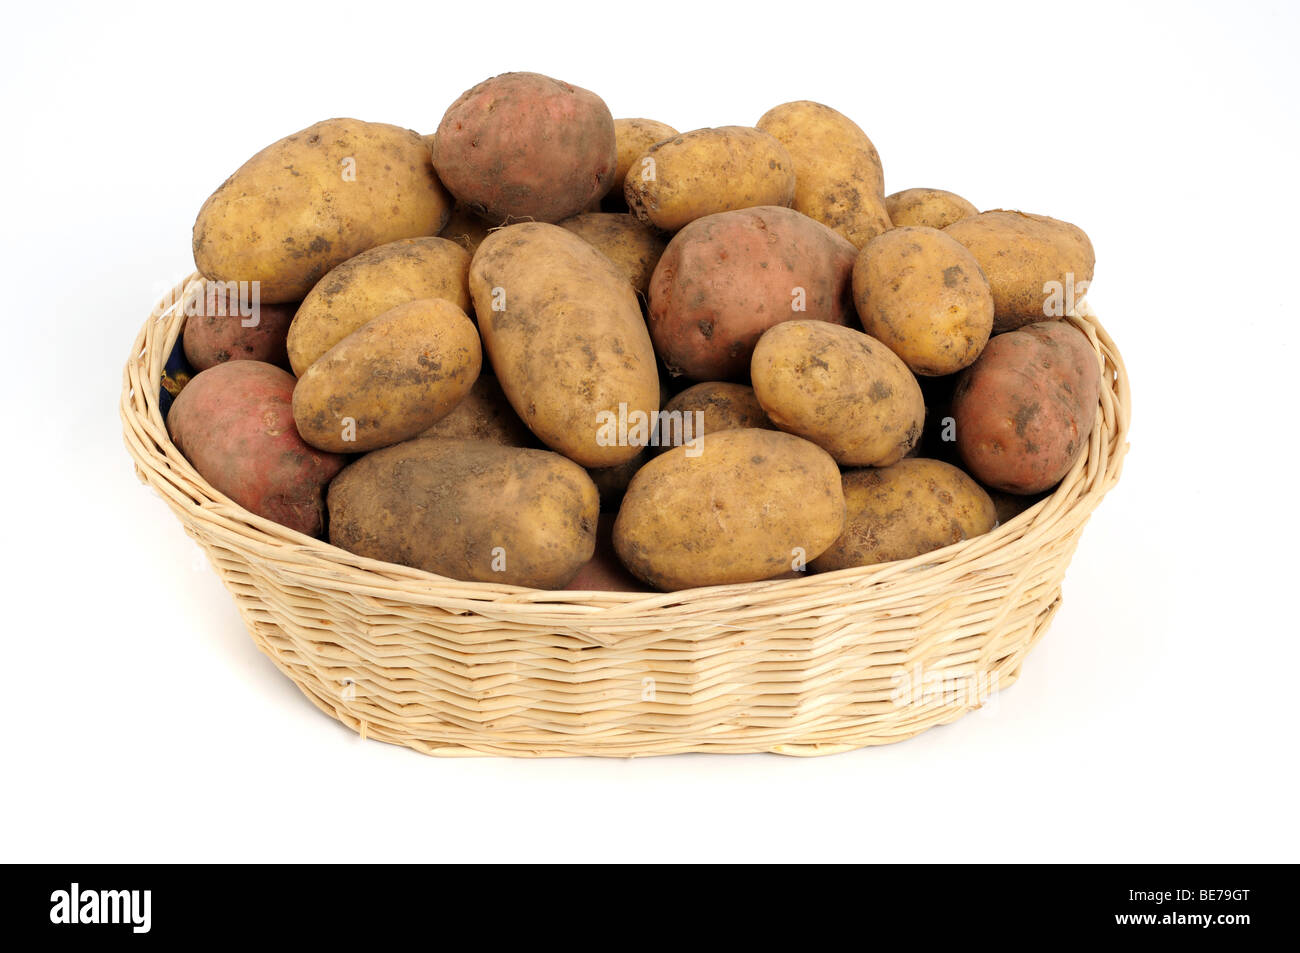 Fresh harvested potatoes in a basket - Stock Image